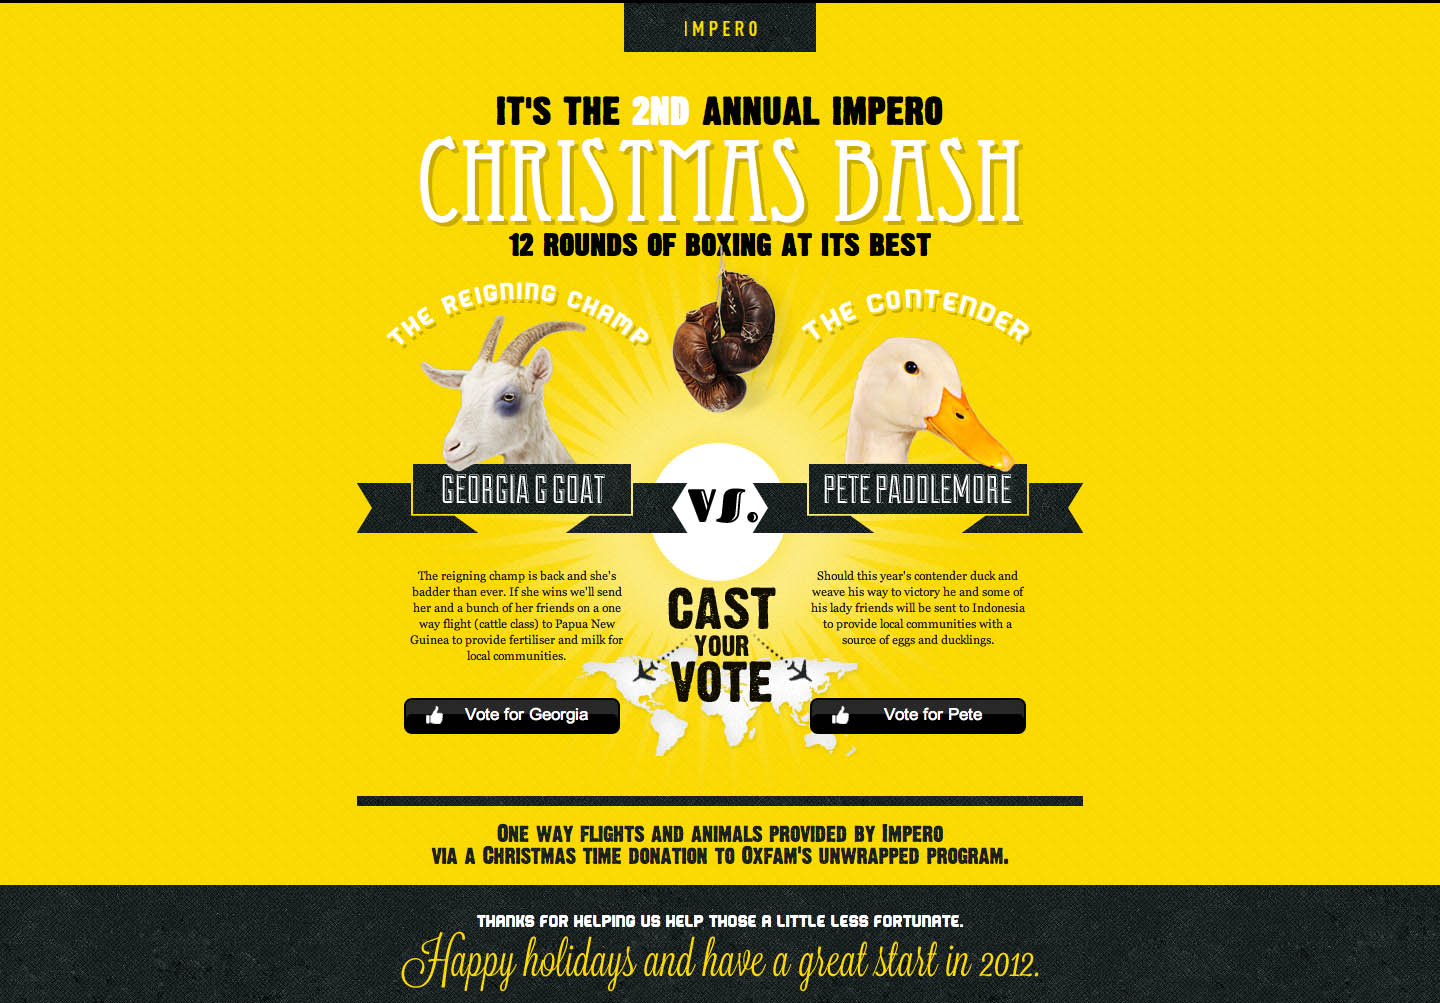 Impero Charity Bash Website Screenshot